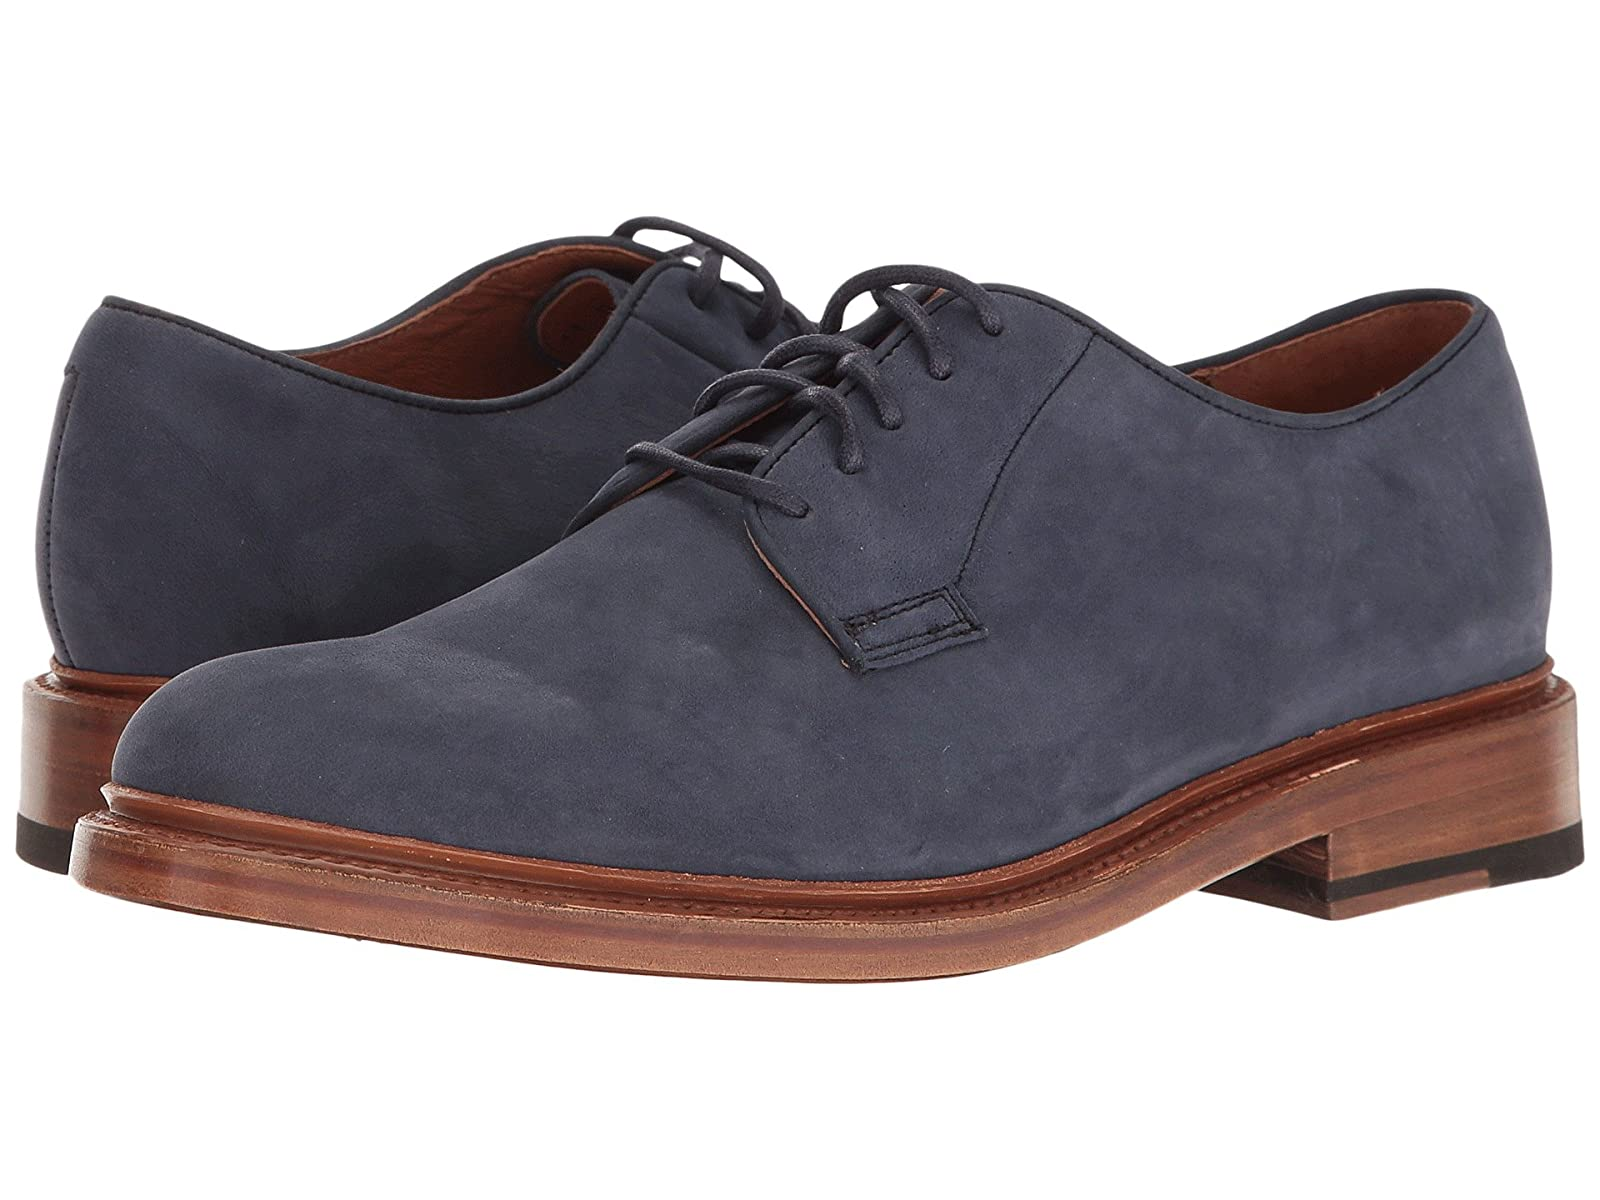 Frye Jones OxfordCheap and distinctive eye-catching shoes